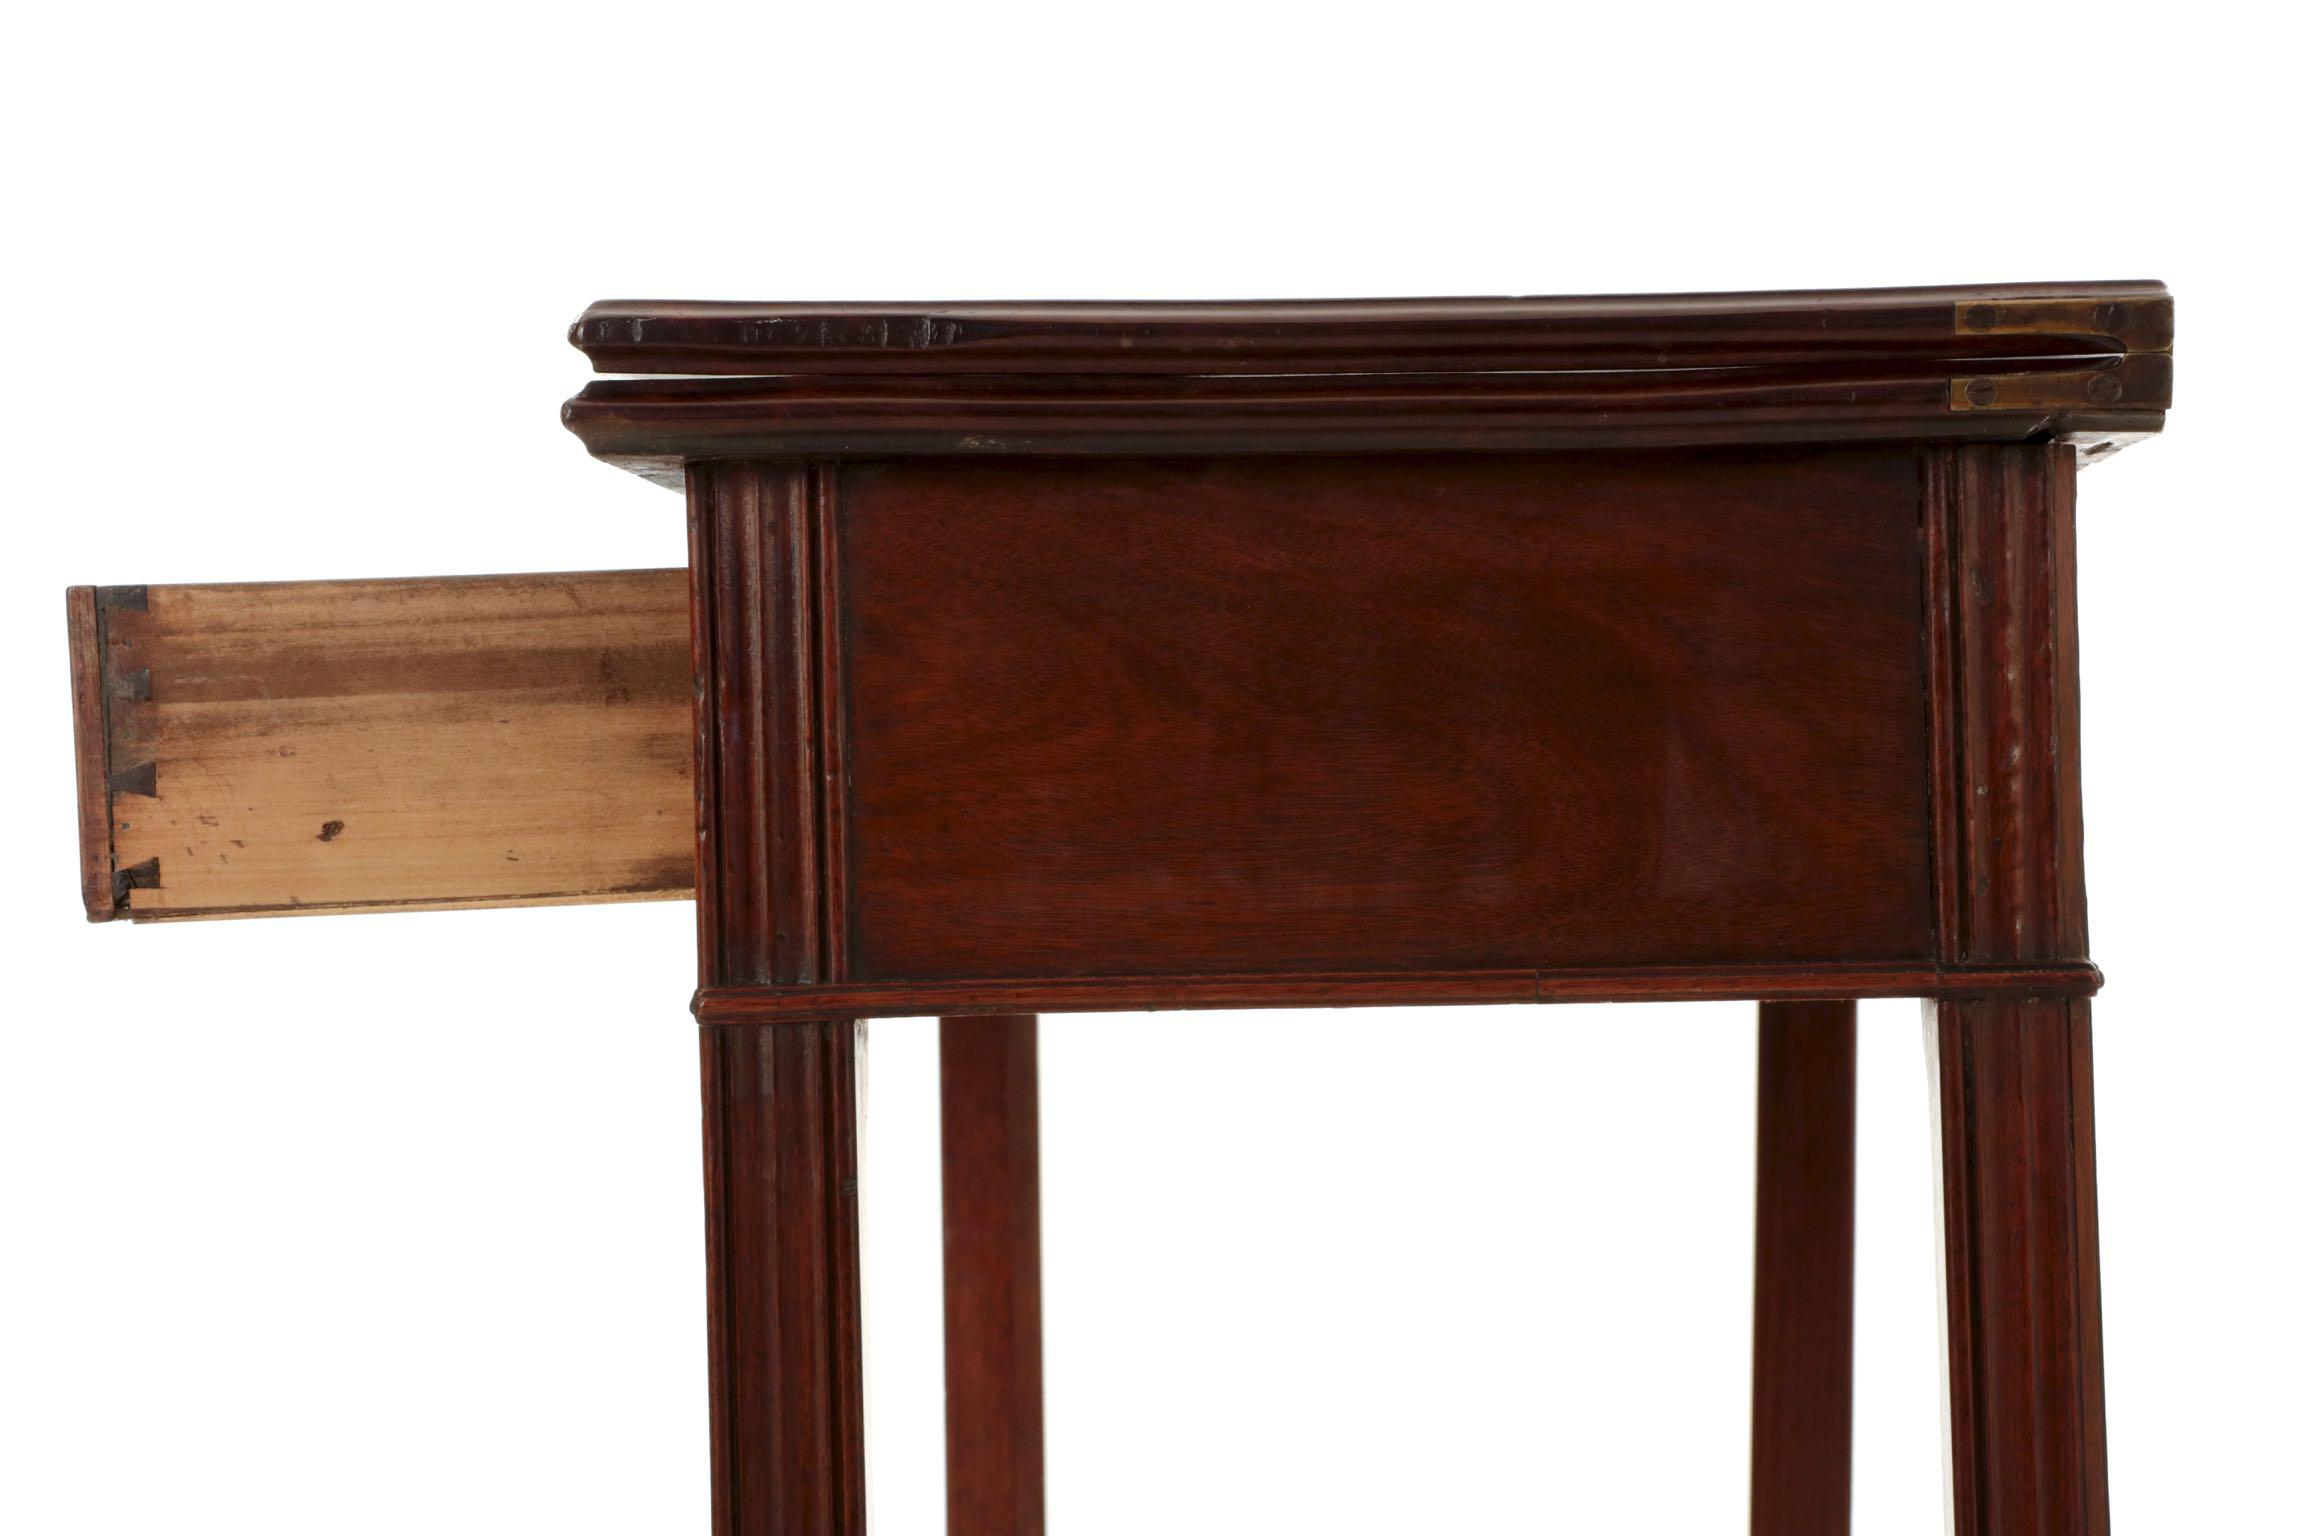 American Chippendale Period Mahogany Antique Card Table Late 18th